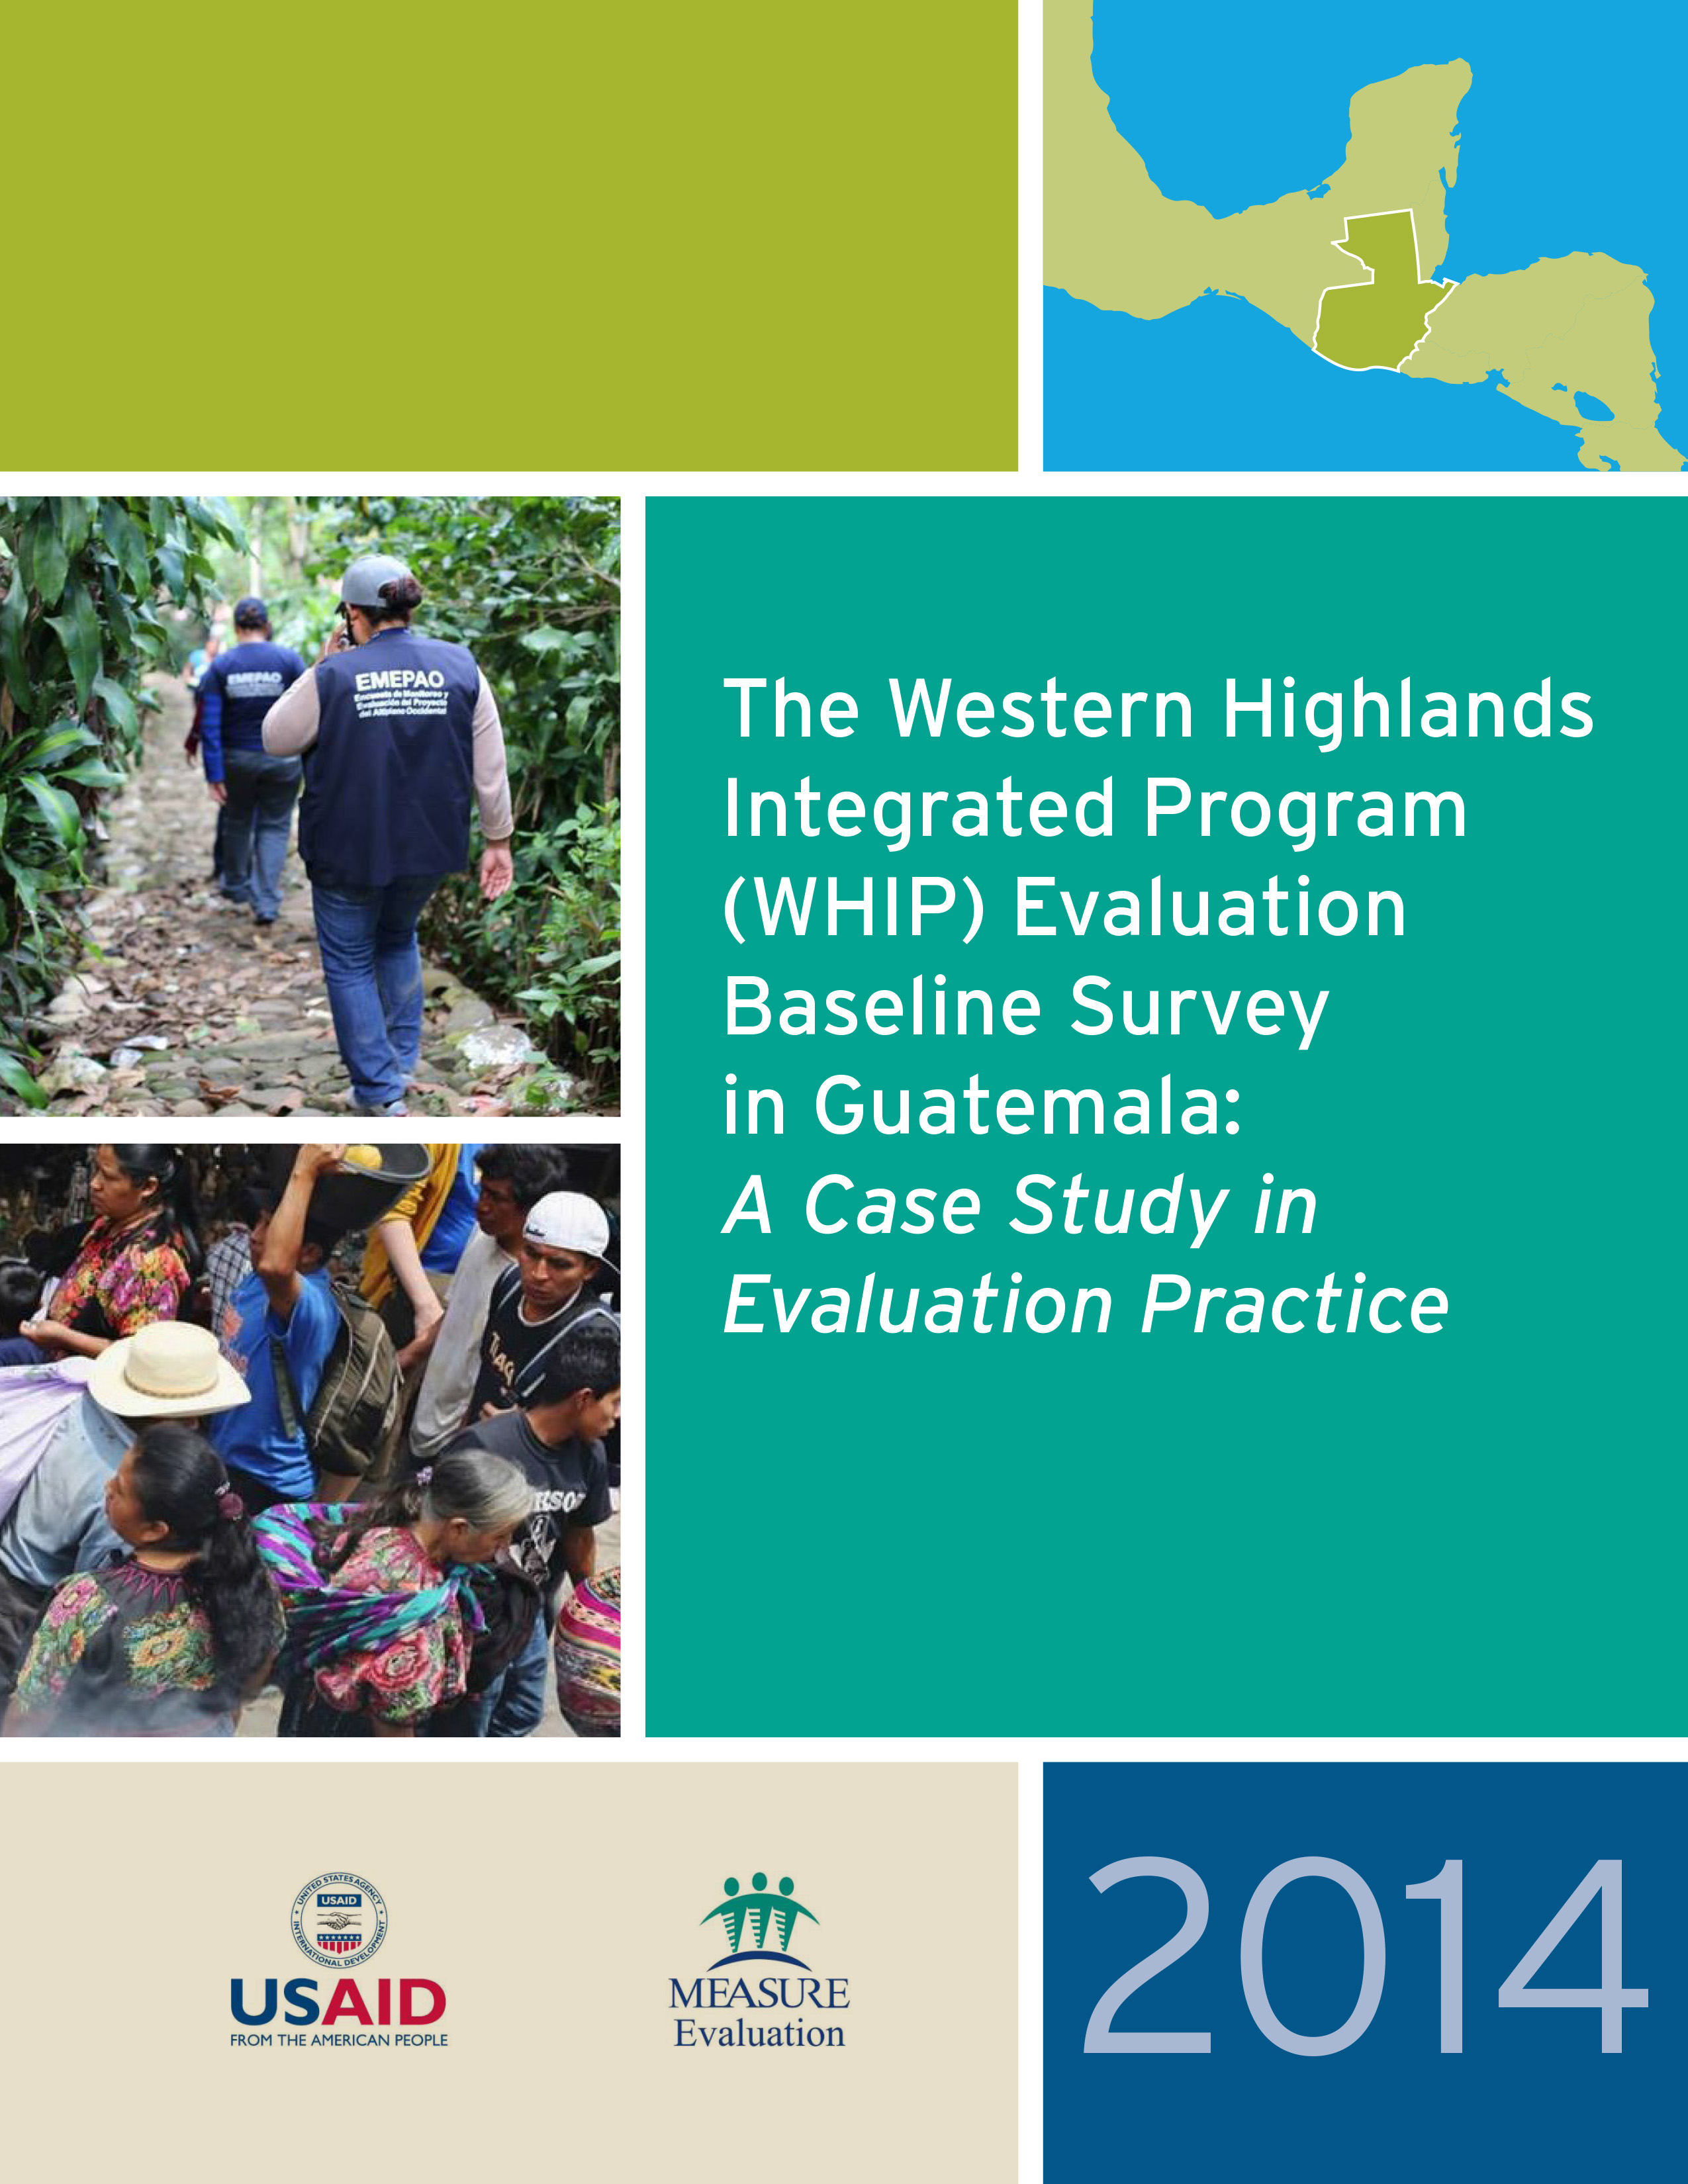 The Western Highlands Integrated Program (WHIP) Evaluation Baseline Survey in Guatemala: A Case Study in Evaluation Practice